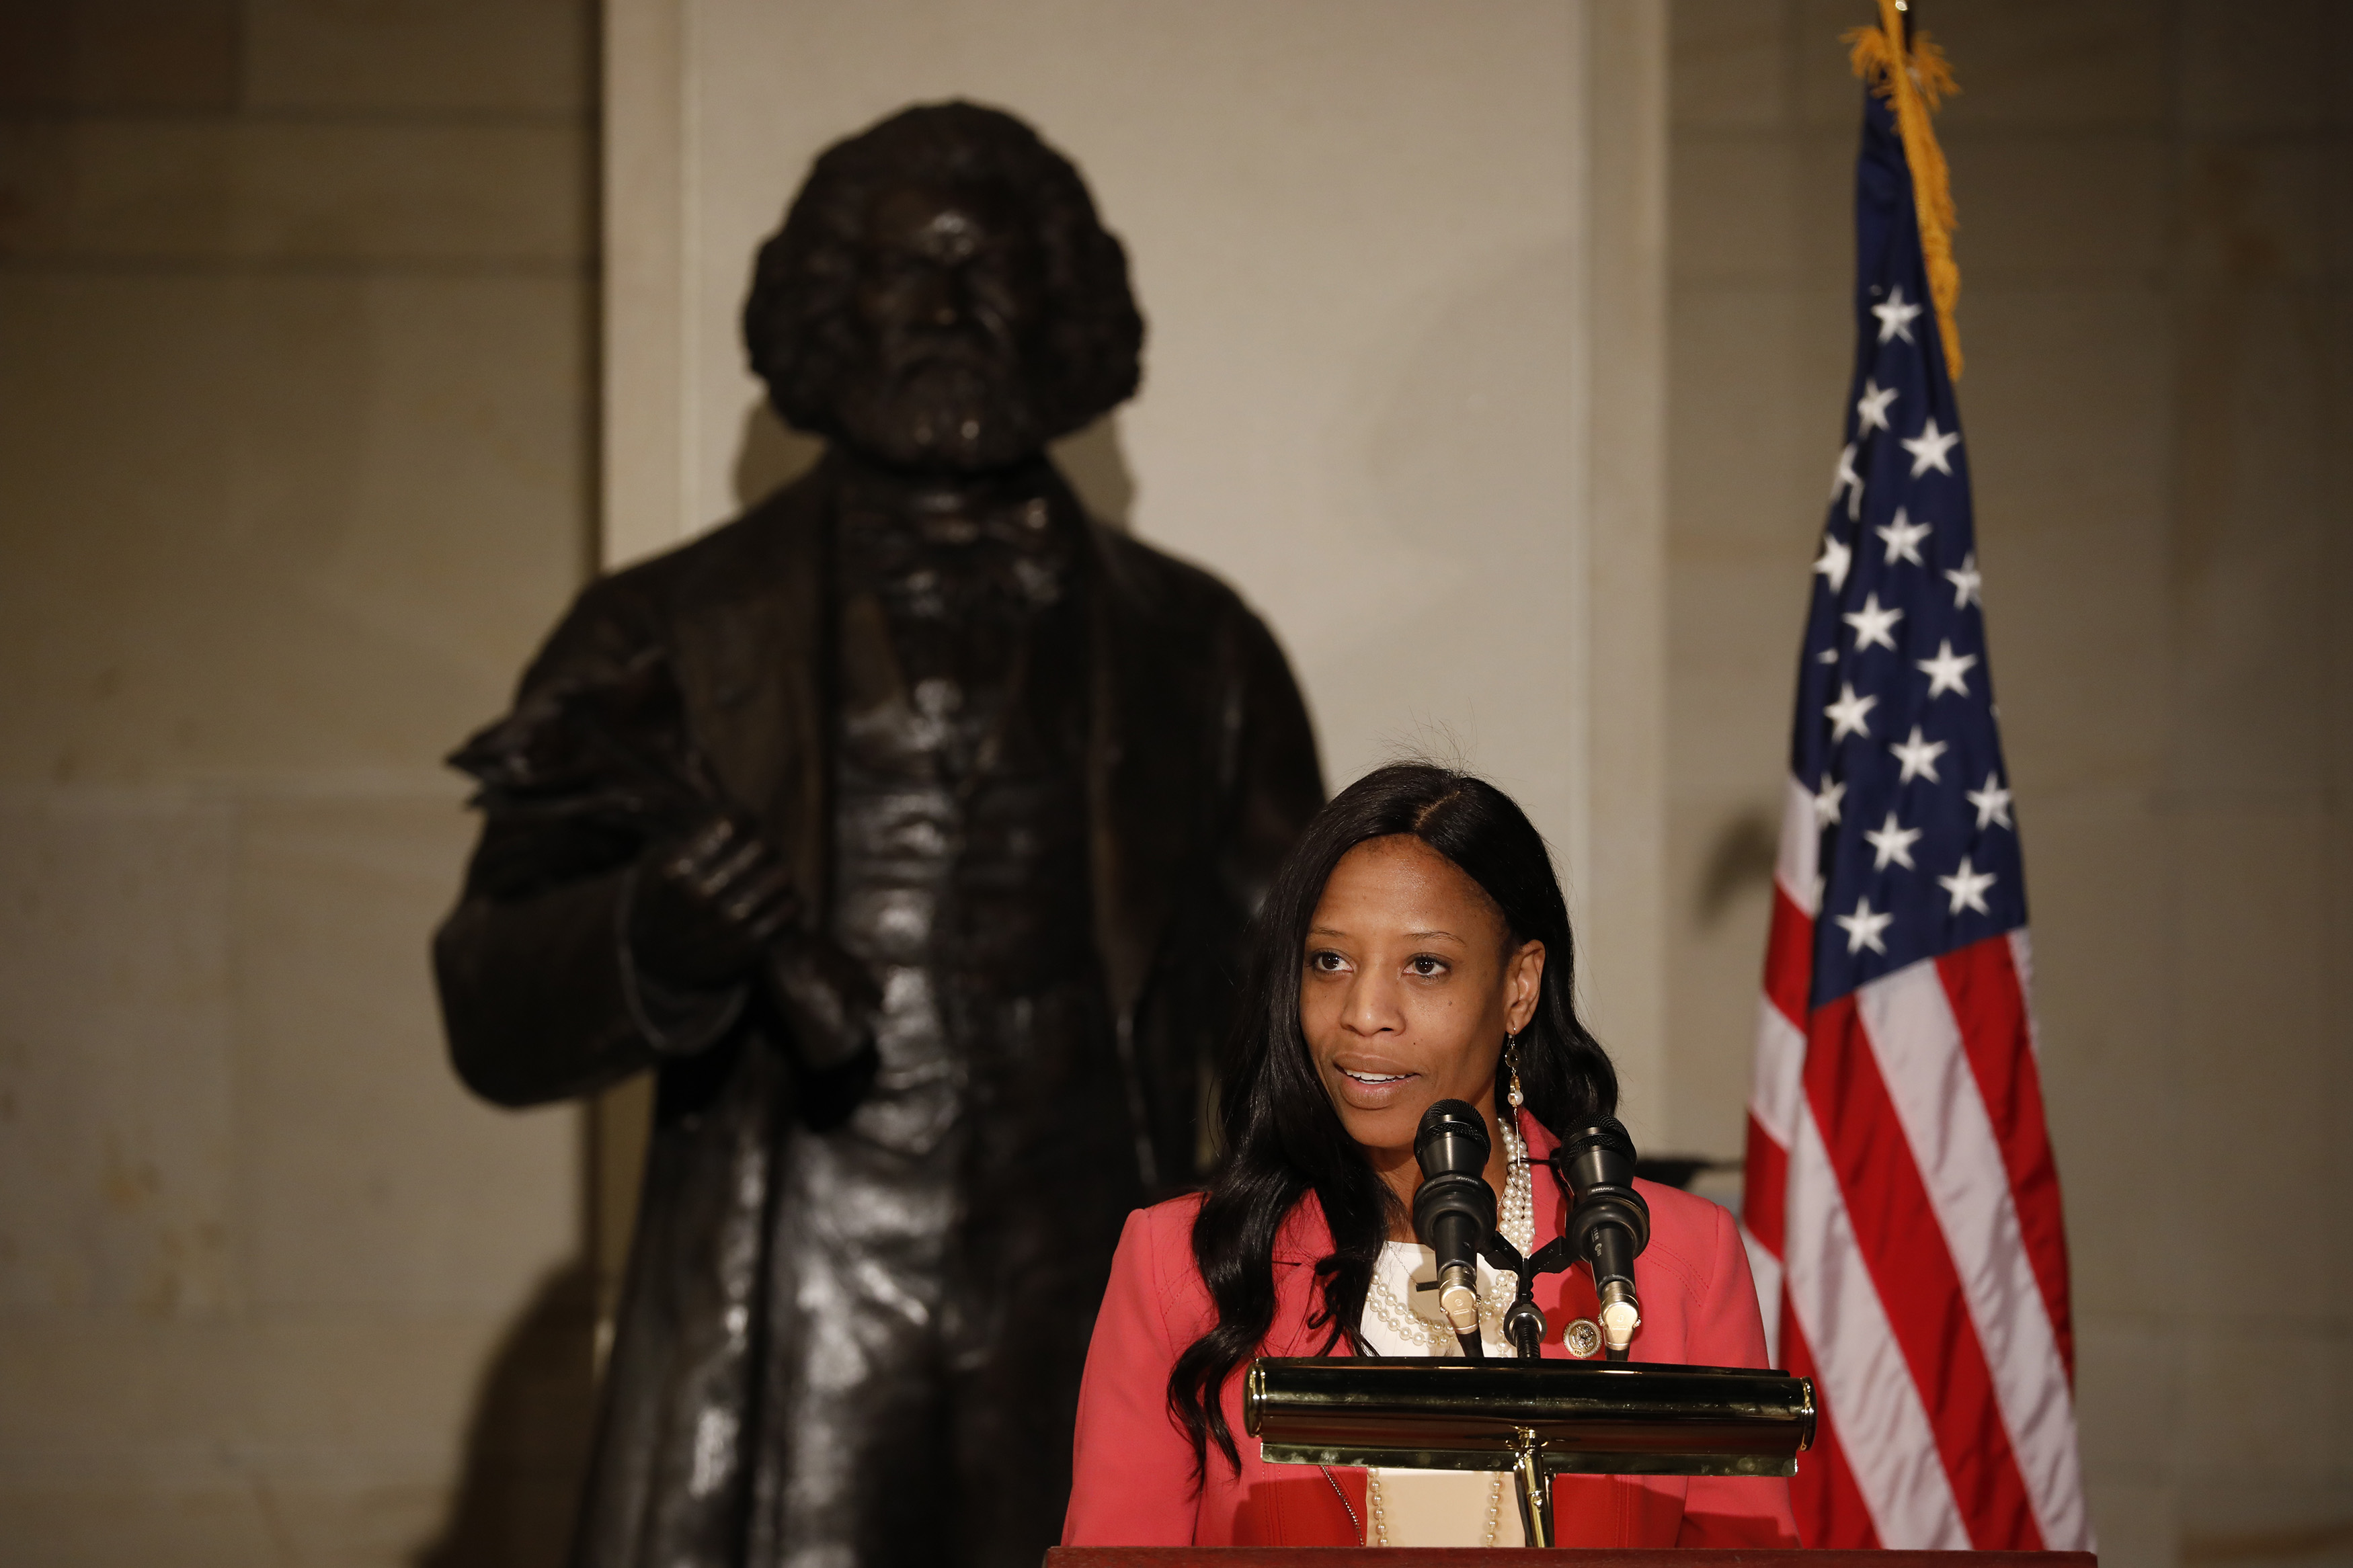 Rep. Mia Love (R-UT) speaks at an event honoring the bicentennial of Frederick Douglass' birth on Capitol Hill on February 14, 2018 in Washington, DC. (Photo by Aaron P. Bernstein/Getty Images)